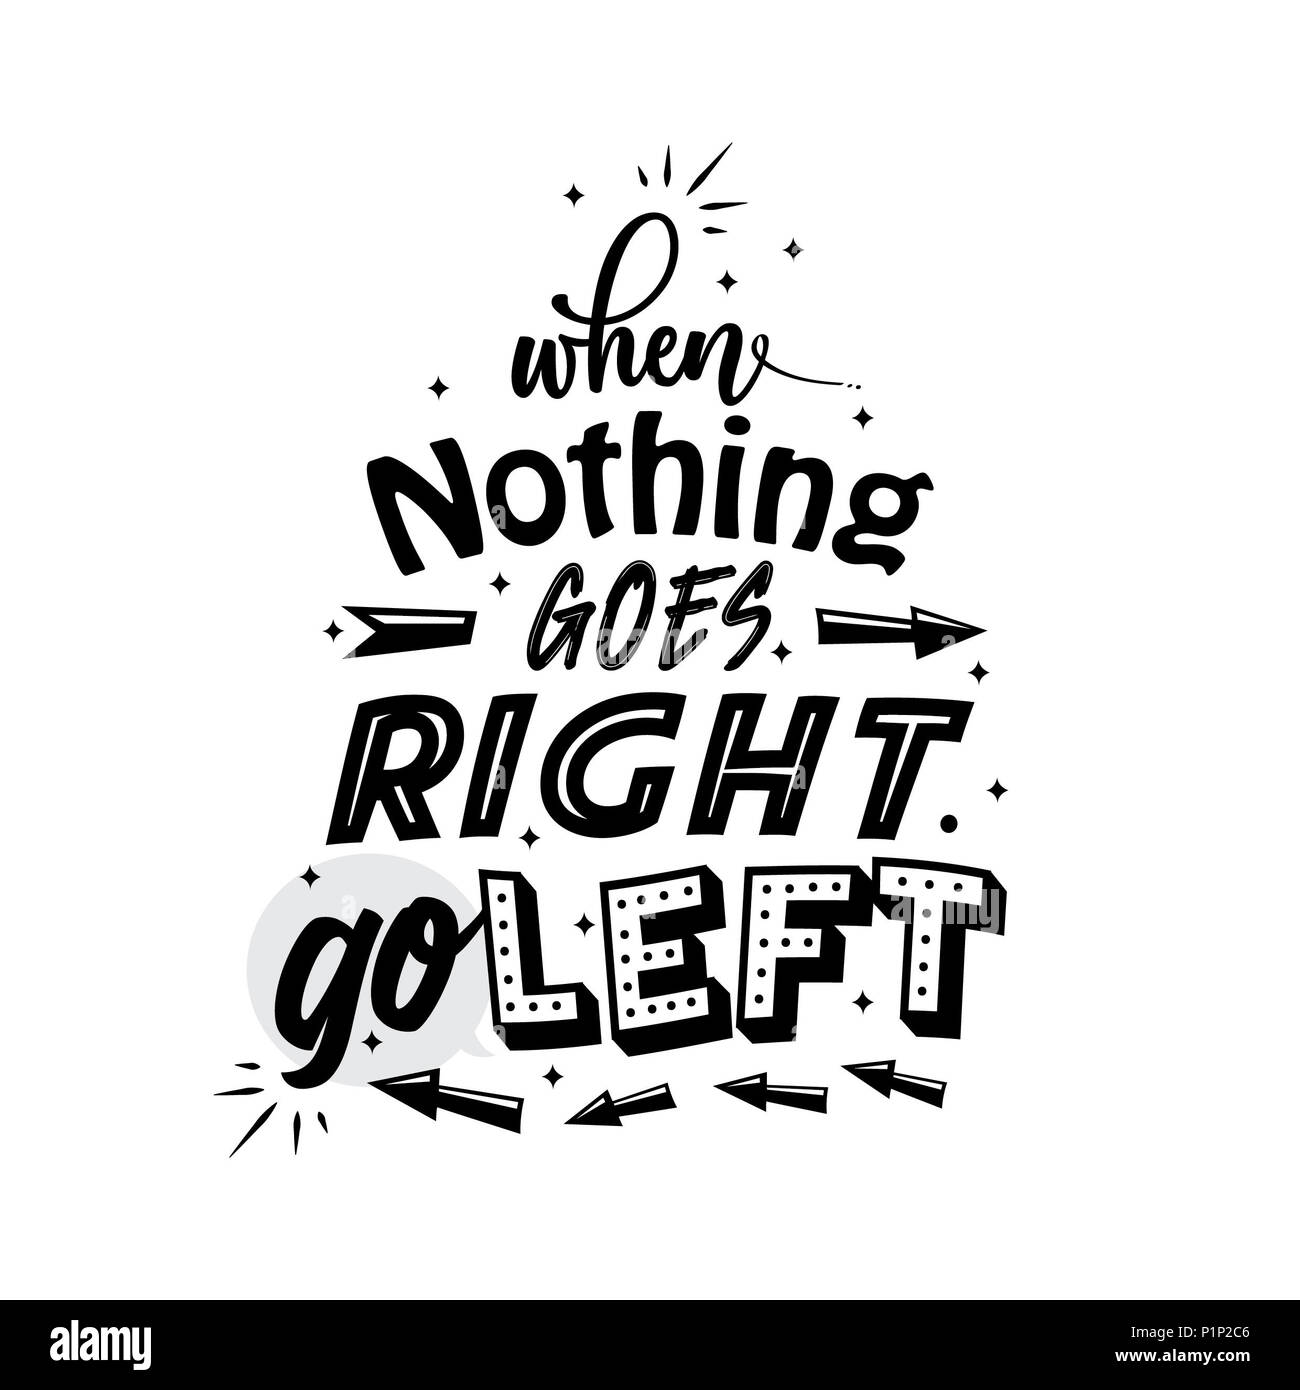 When nothing goes right go left custom font typography vector art illustration wall decor black and white. motivational inspirational quote poster - Stock Image